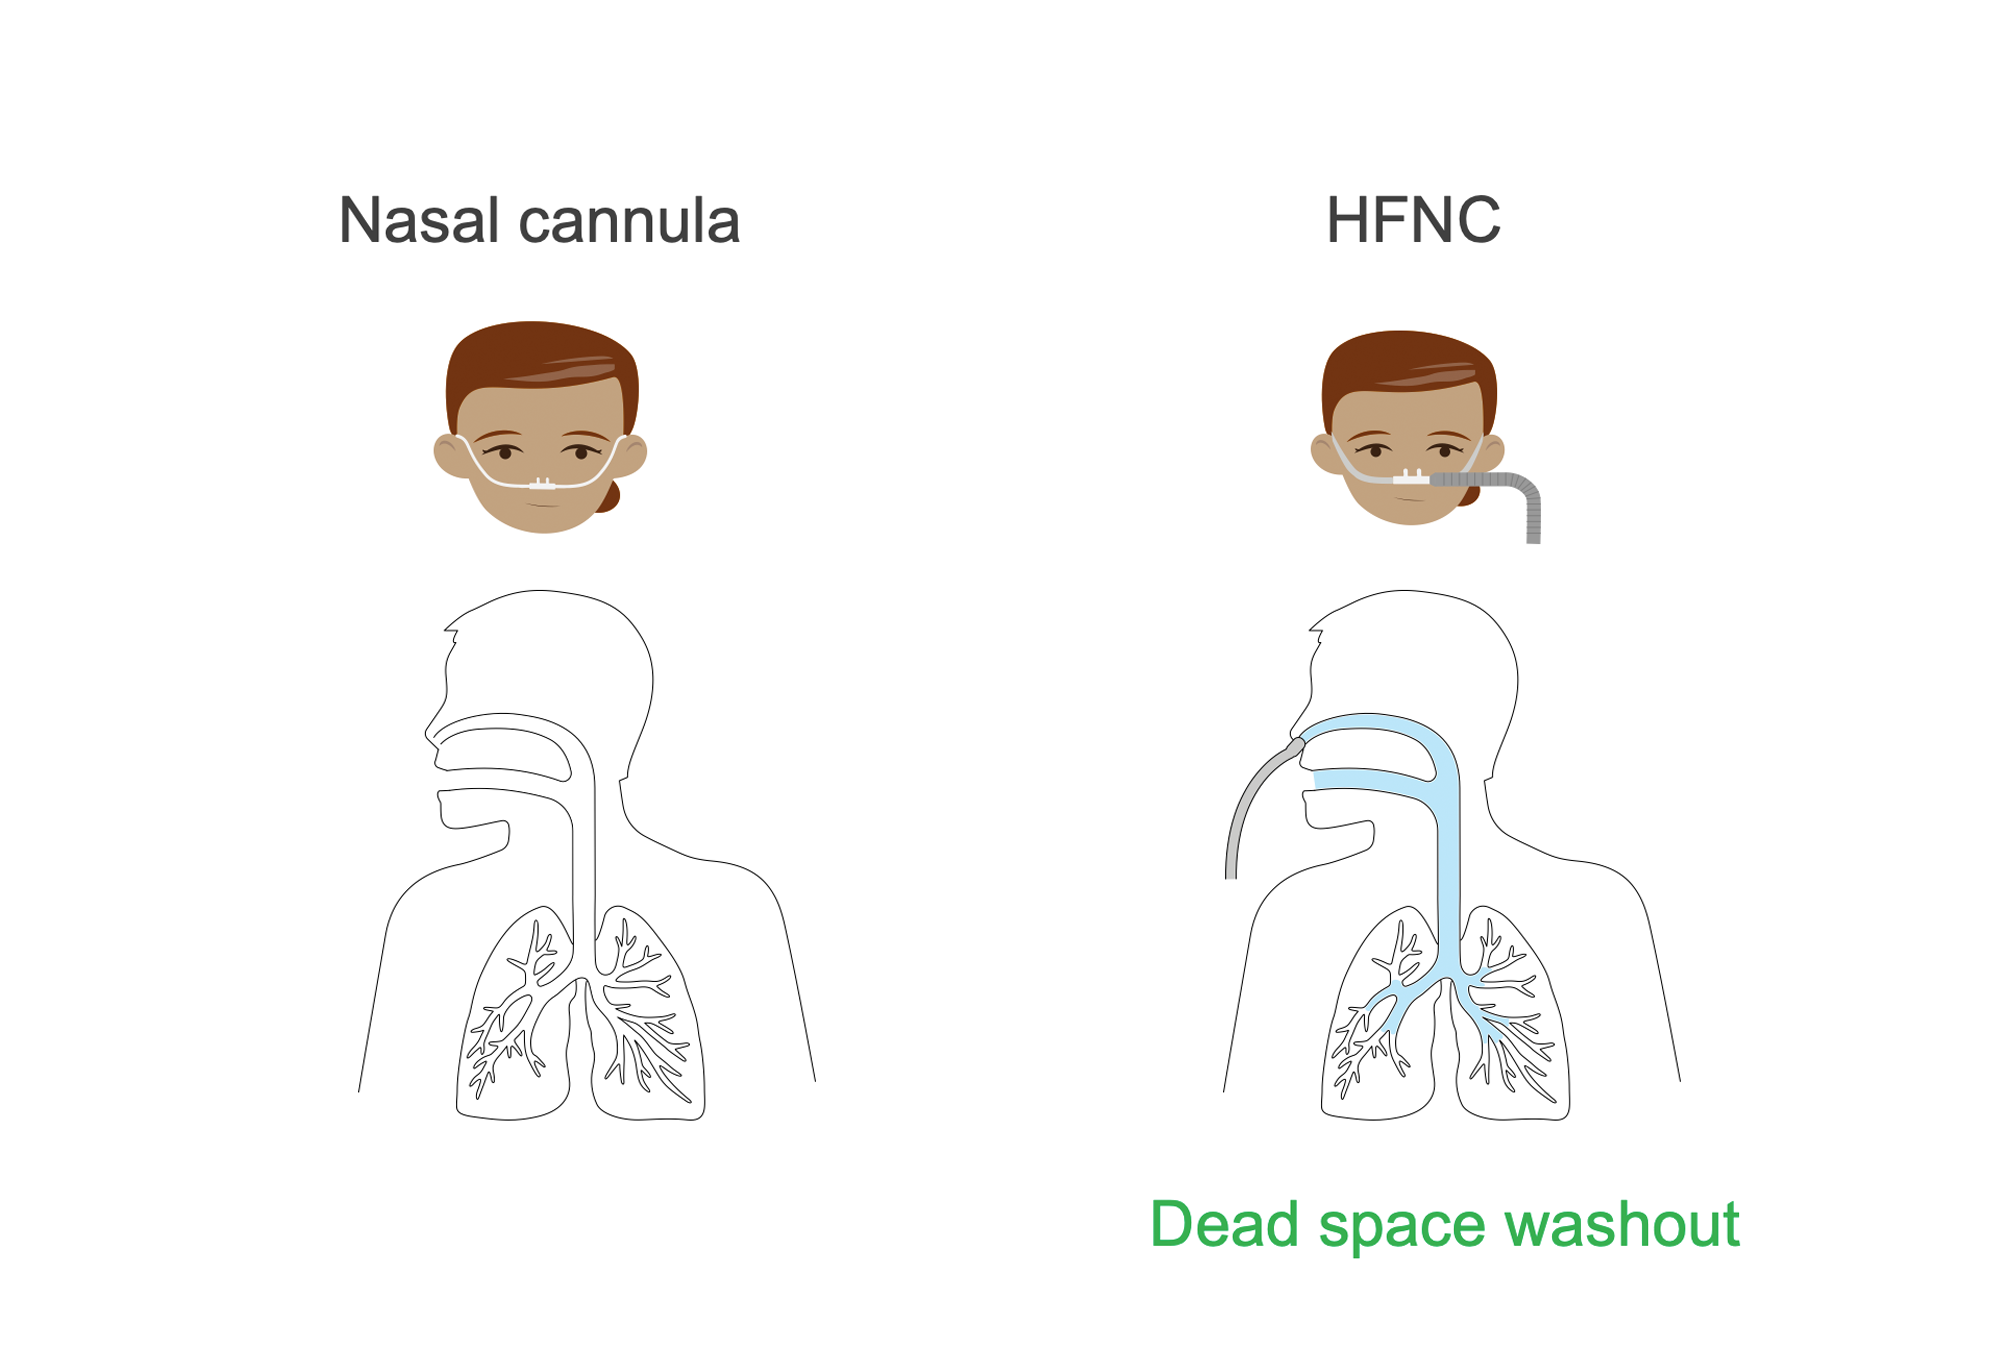 Two women: one with nasal cannula and one with larger tubing indicating high-flow nasal cannula (HFNC). Lungs showing presence of dead space washout in HFNC condition. Illustration.